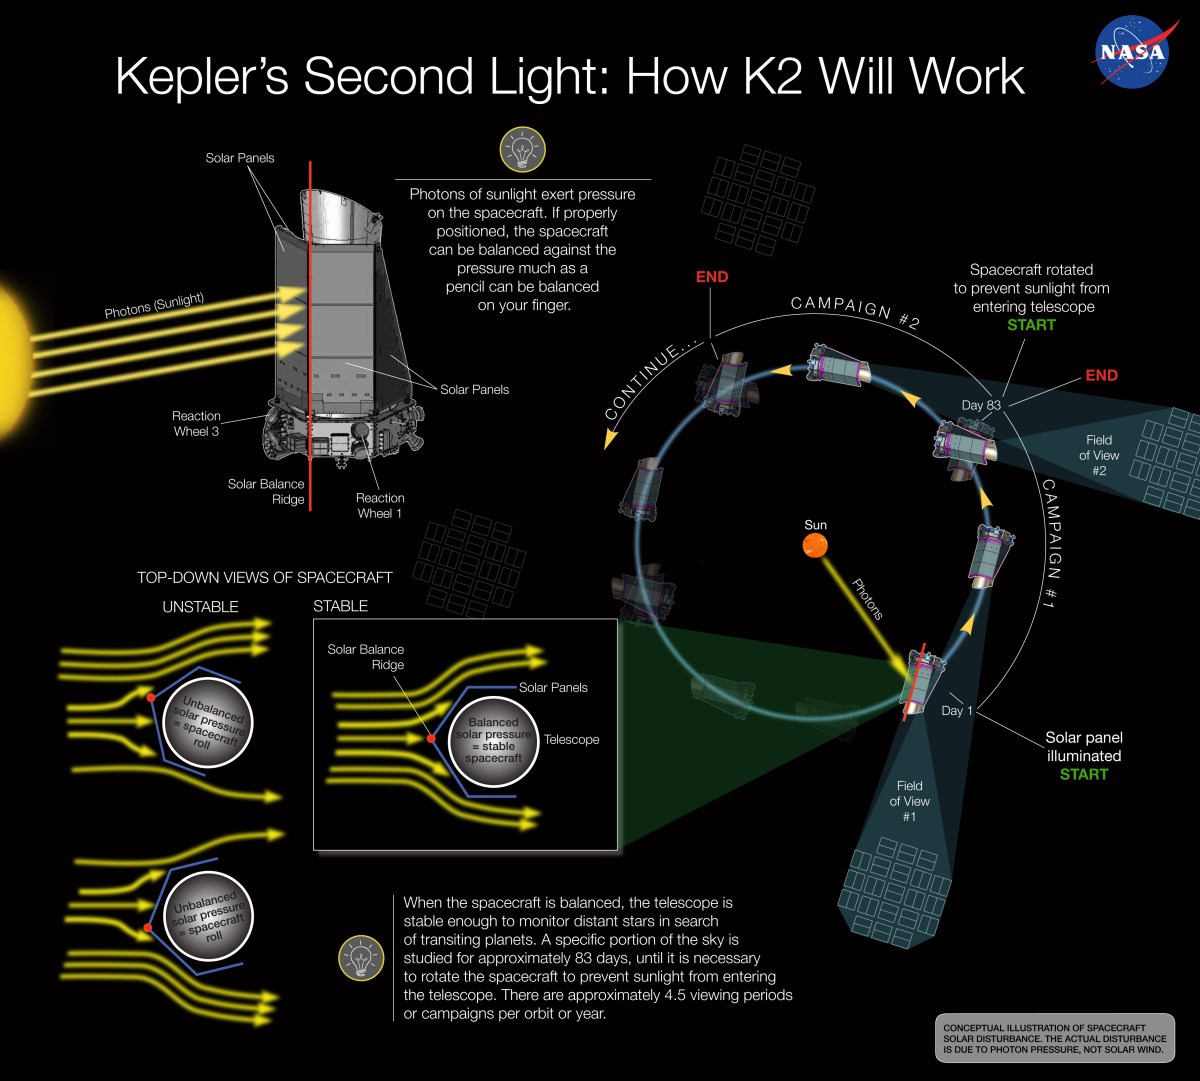 k2_explained_25nov_story